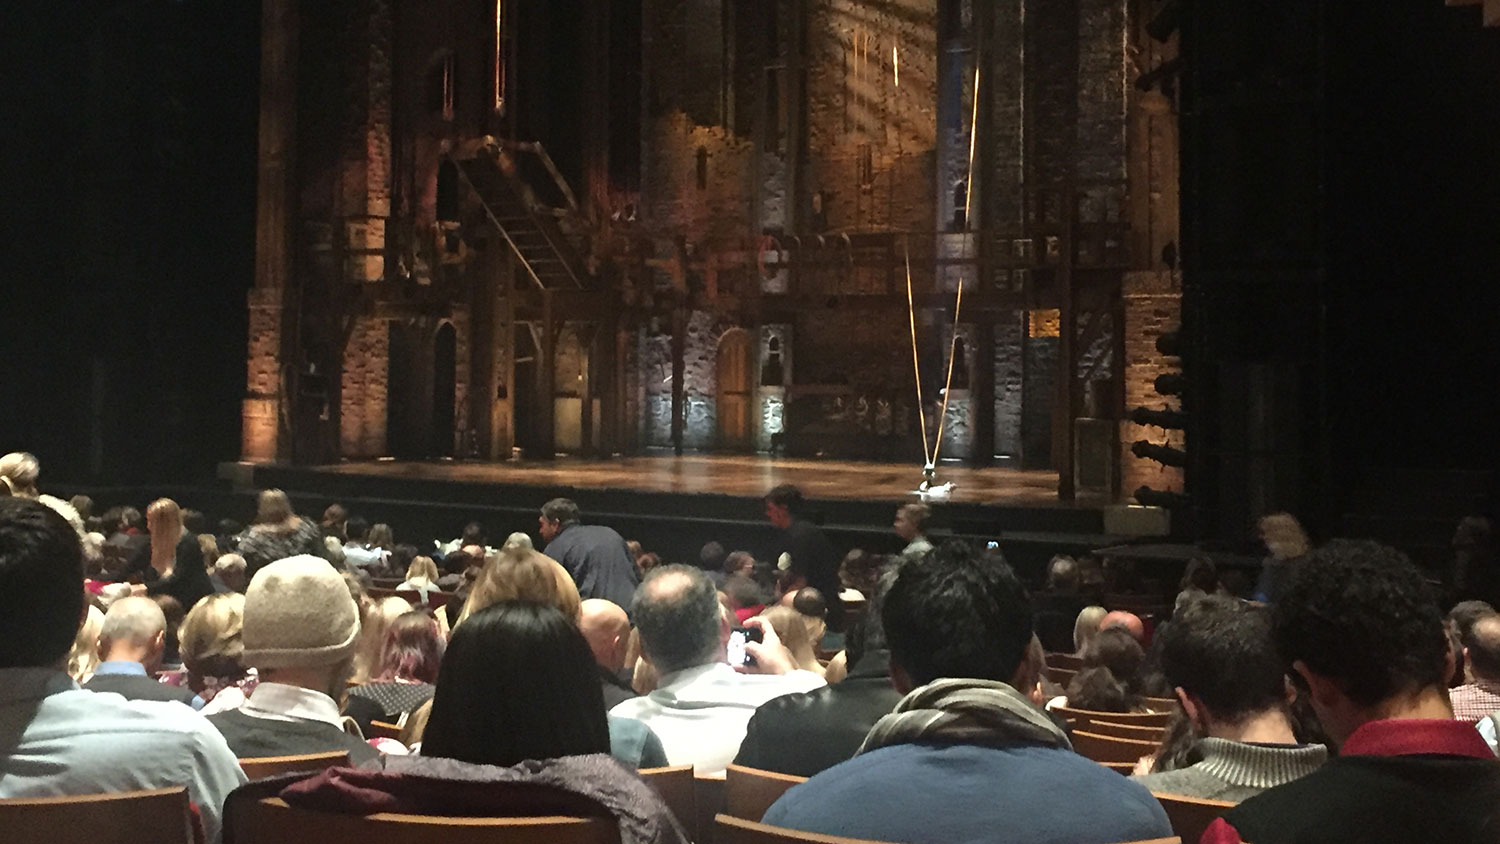 Hamilton stage before the show at DPAC